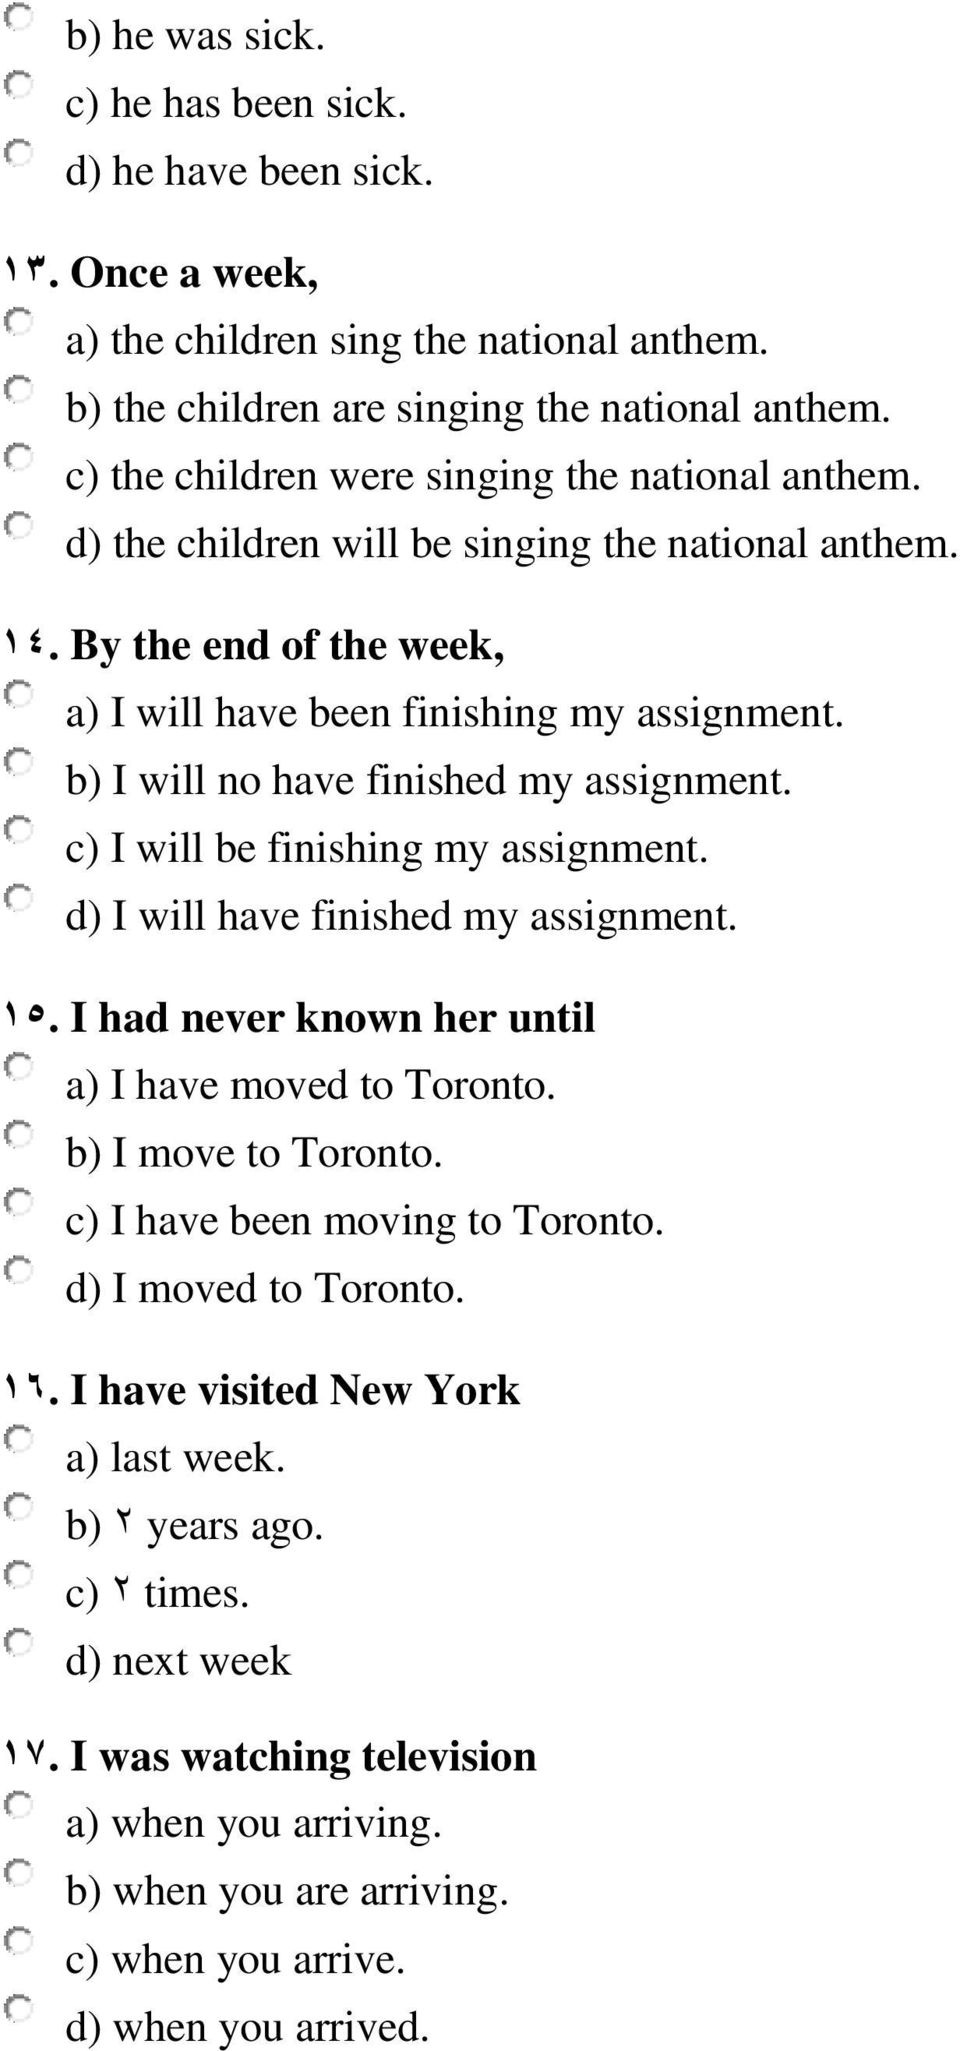 b) I will no have finished my assignment. c) I will be finishing my assignment. d) I will have finished my assignment. 15. I had never known her until a) I have moved to Toronto. b) I move to Toronto.